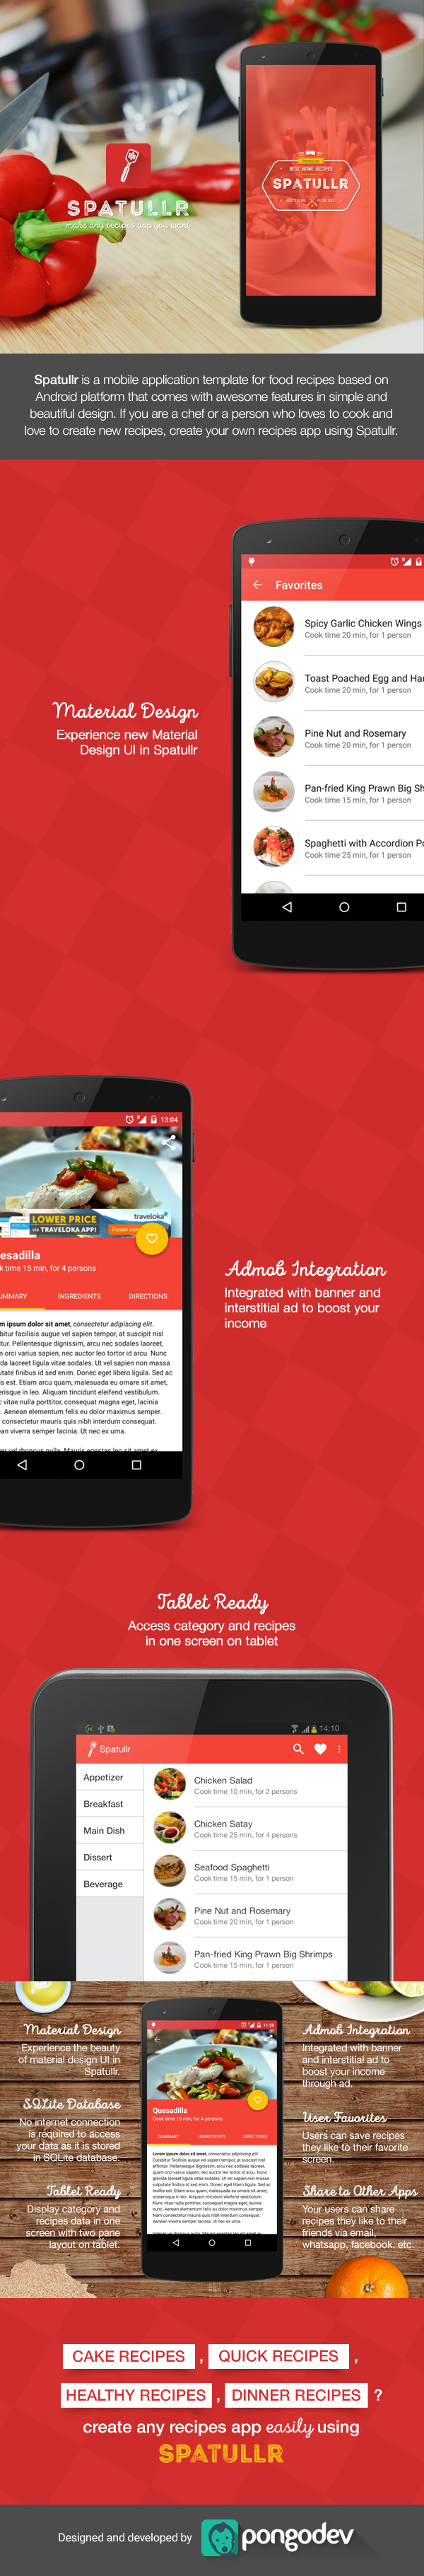 Spatullr recipes app for android on behance forumfinder Image collections